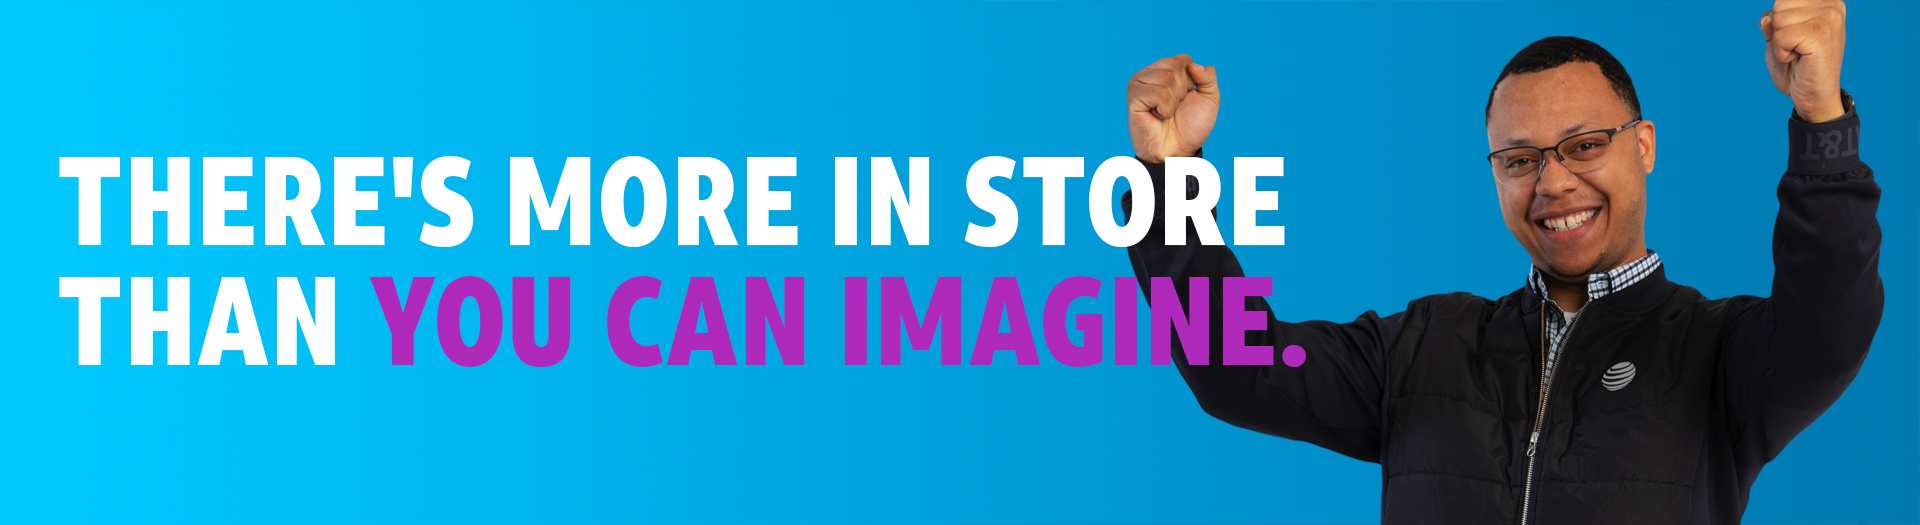 There's more in store than you can imagine. Image: Male retail employee with hands in air smiling.